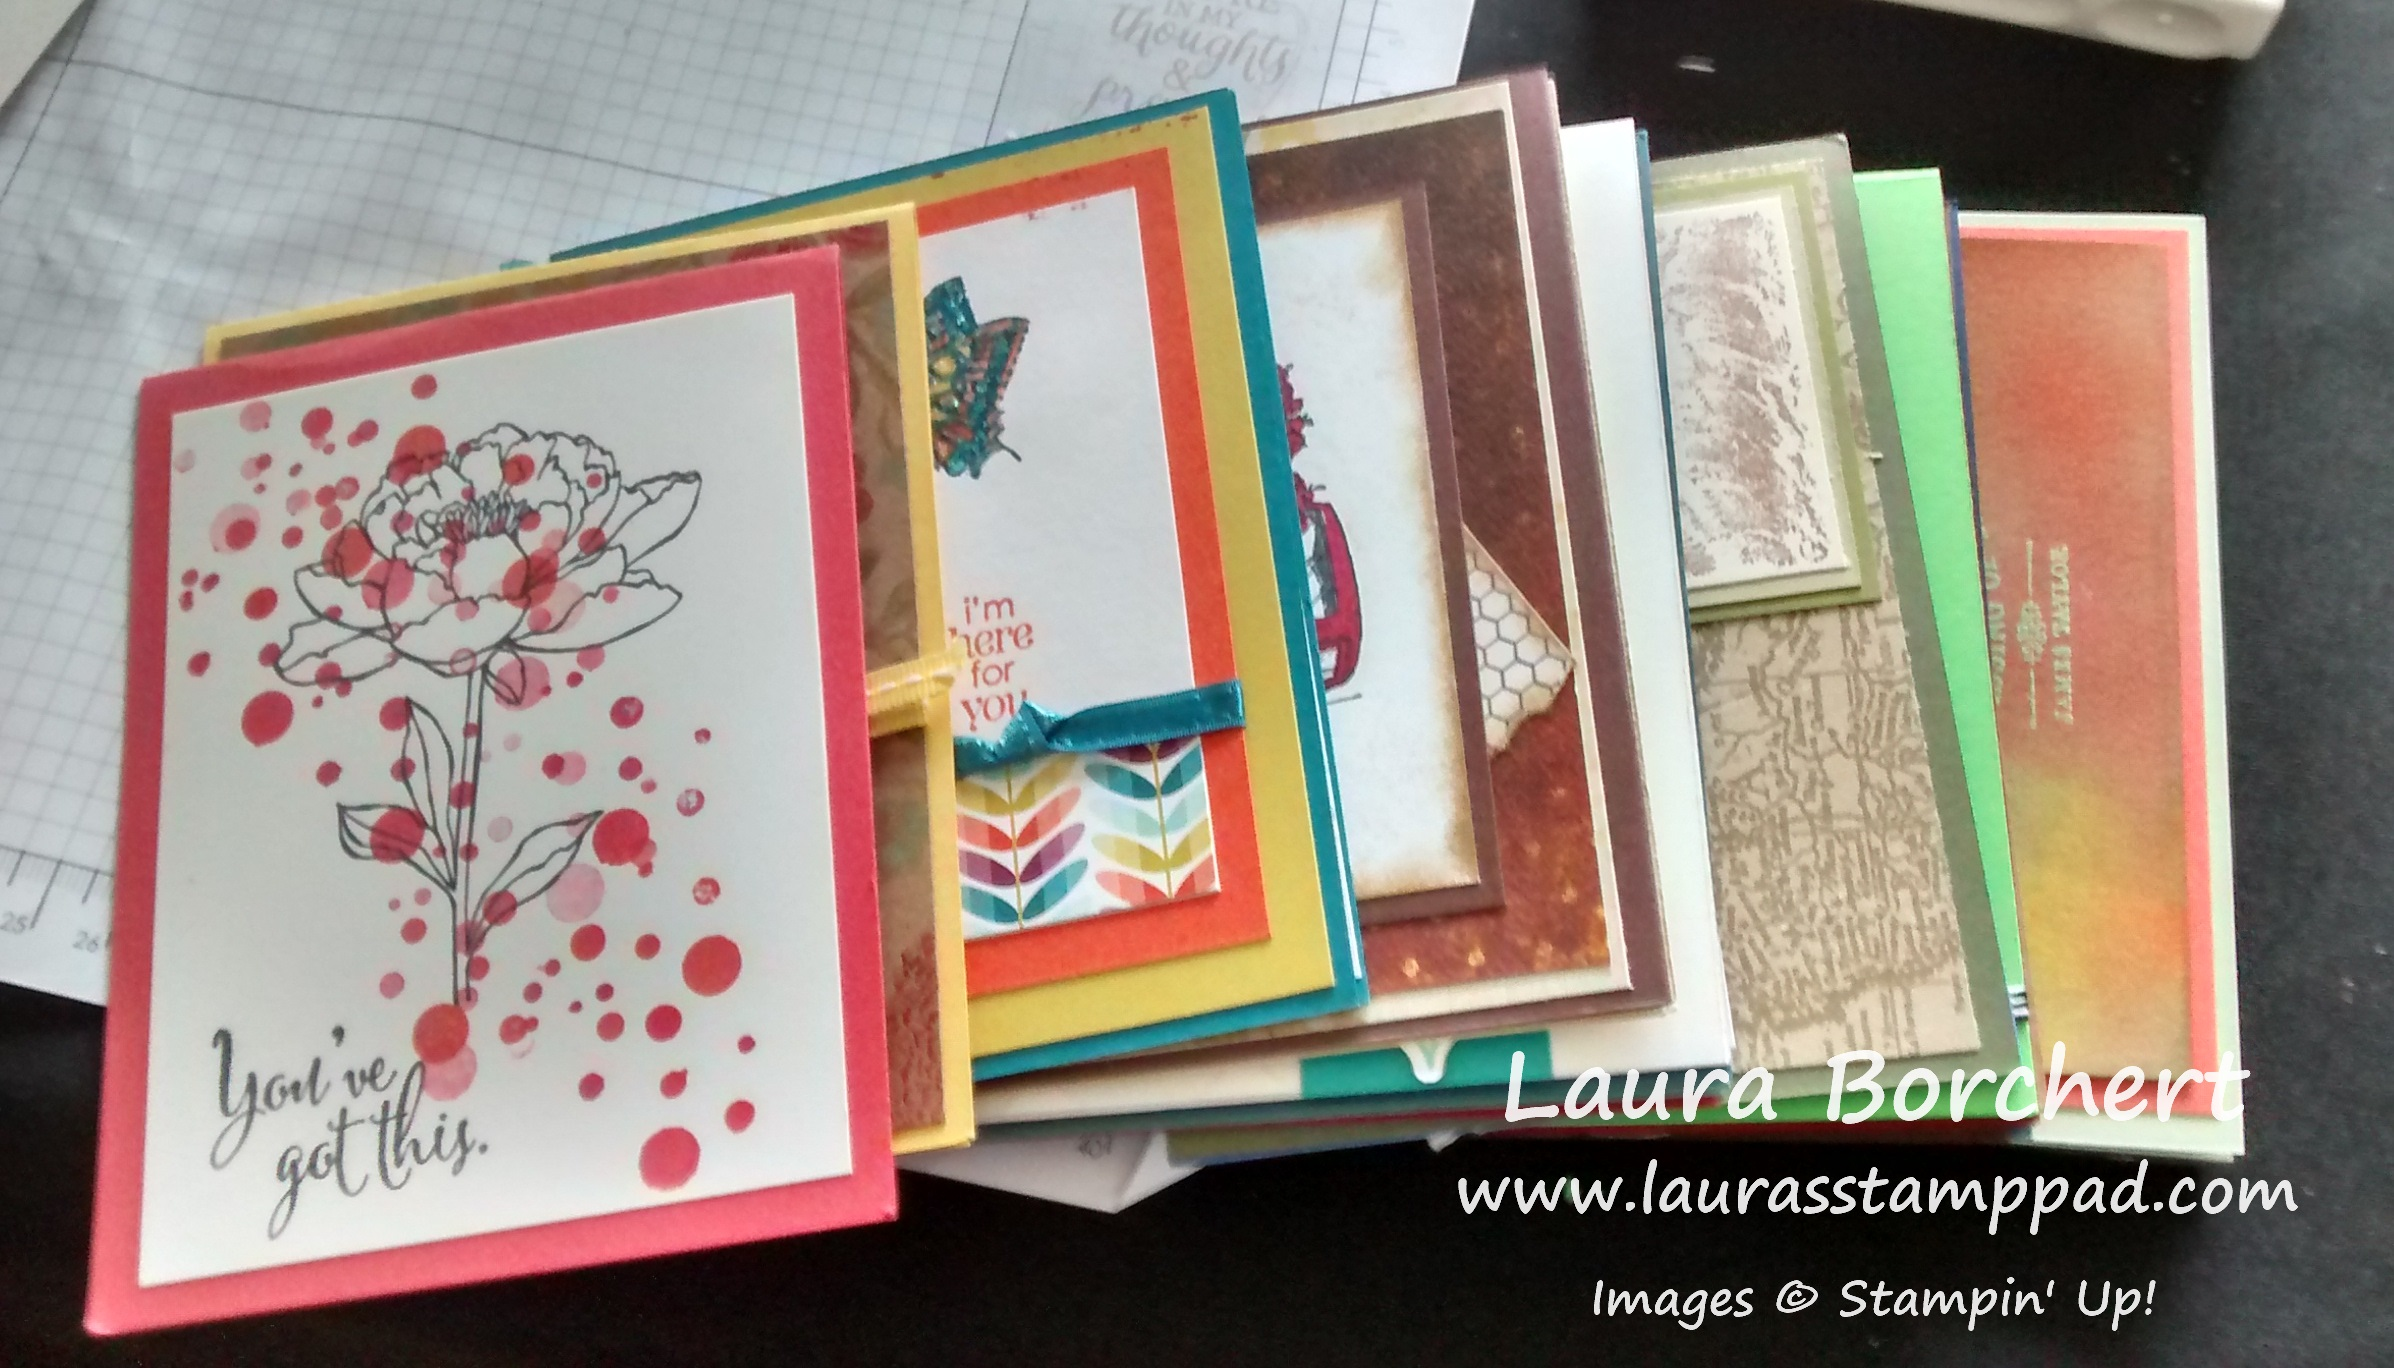 Ronald mcdonald house charities archives lauras stamp donated cards laurasstamppad kristyandbryce Image collections